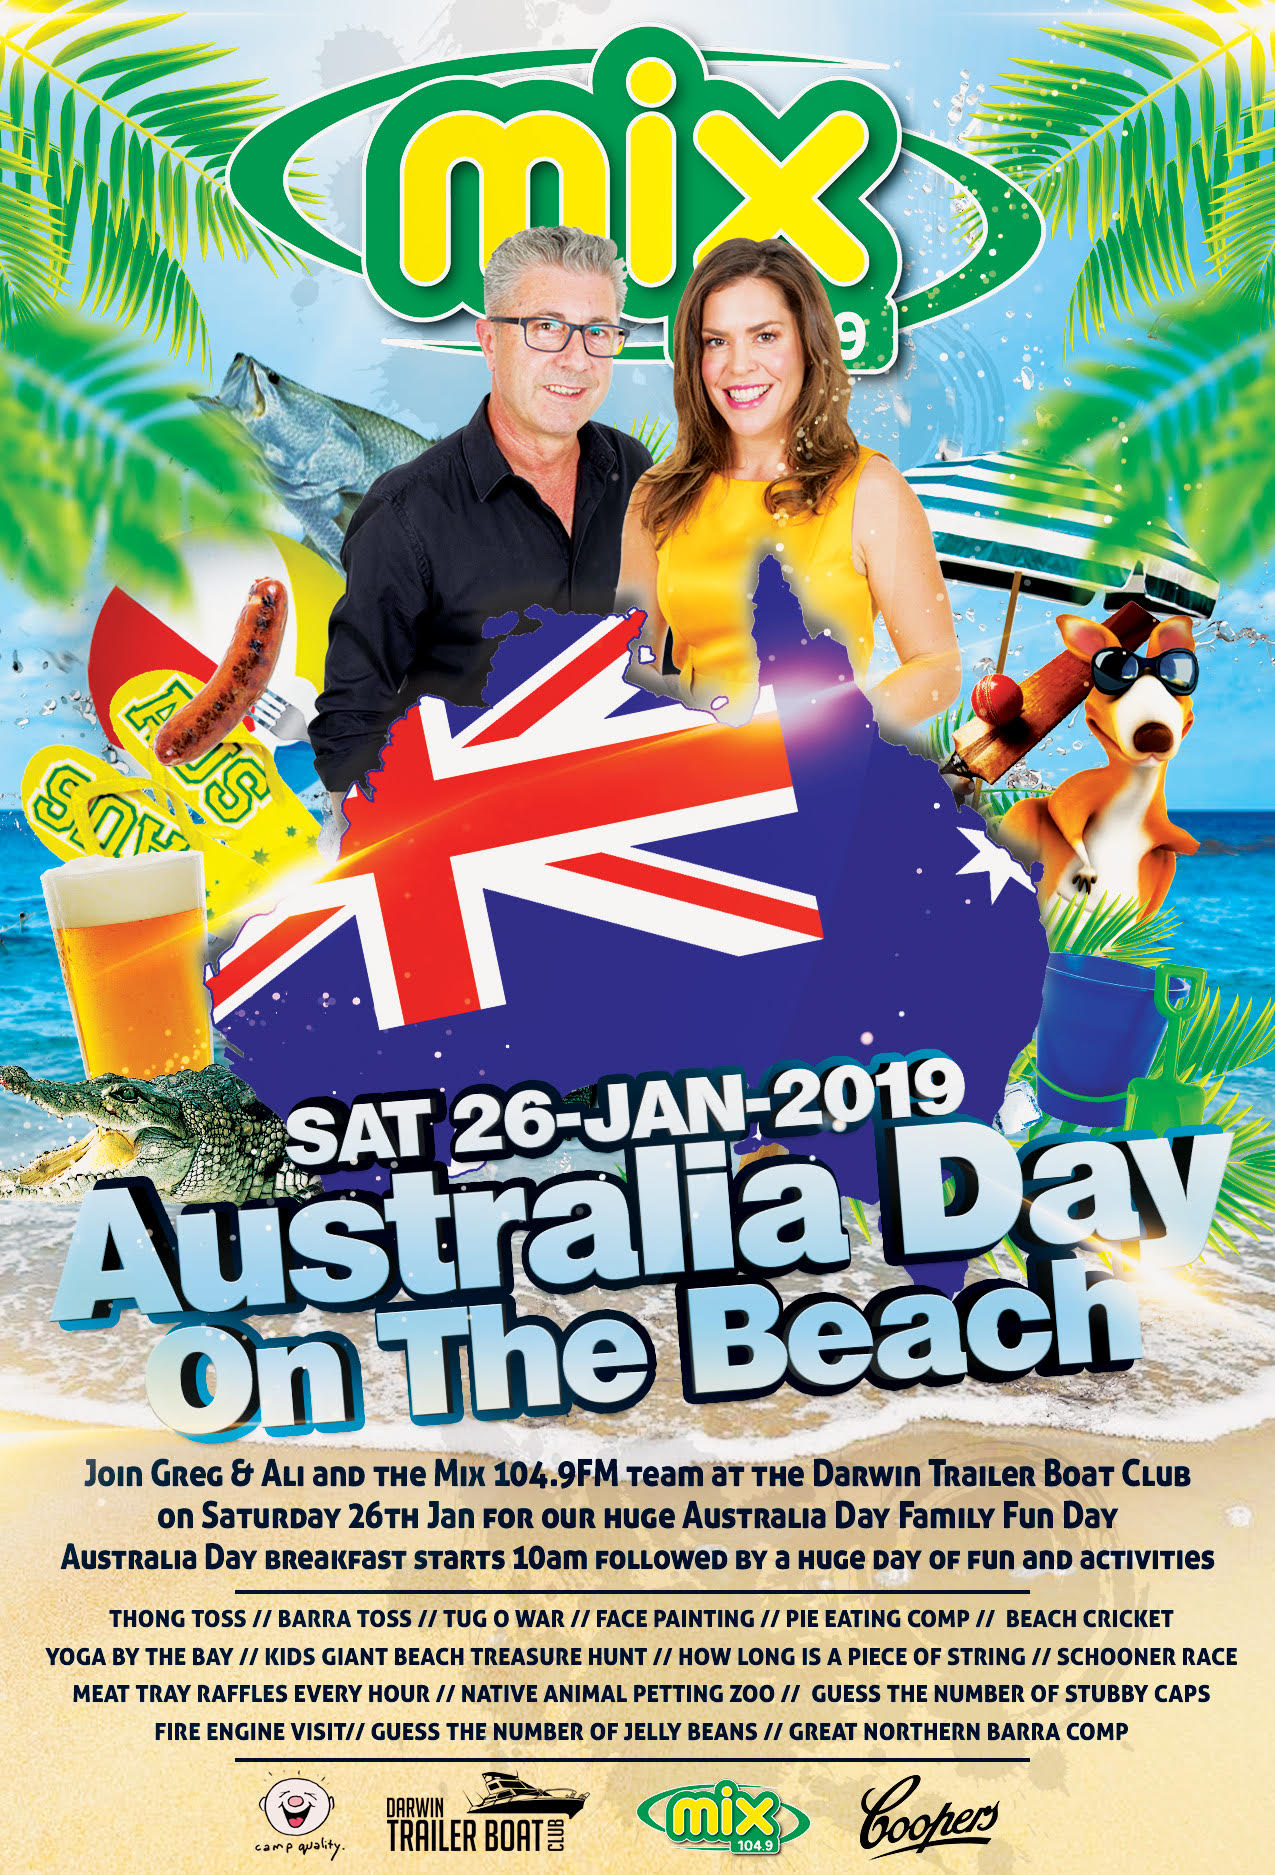 Australia Day on the Beach